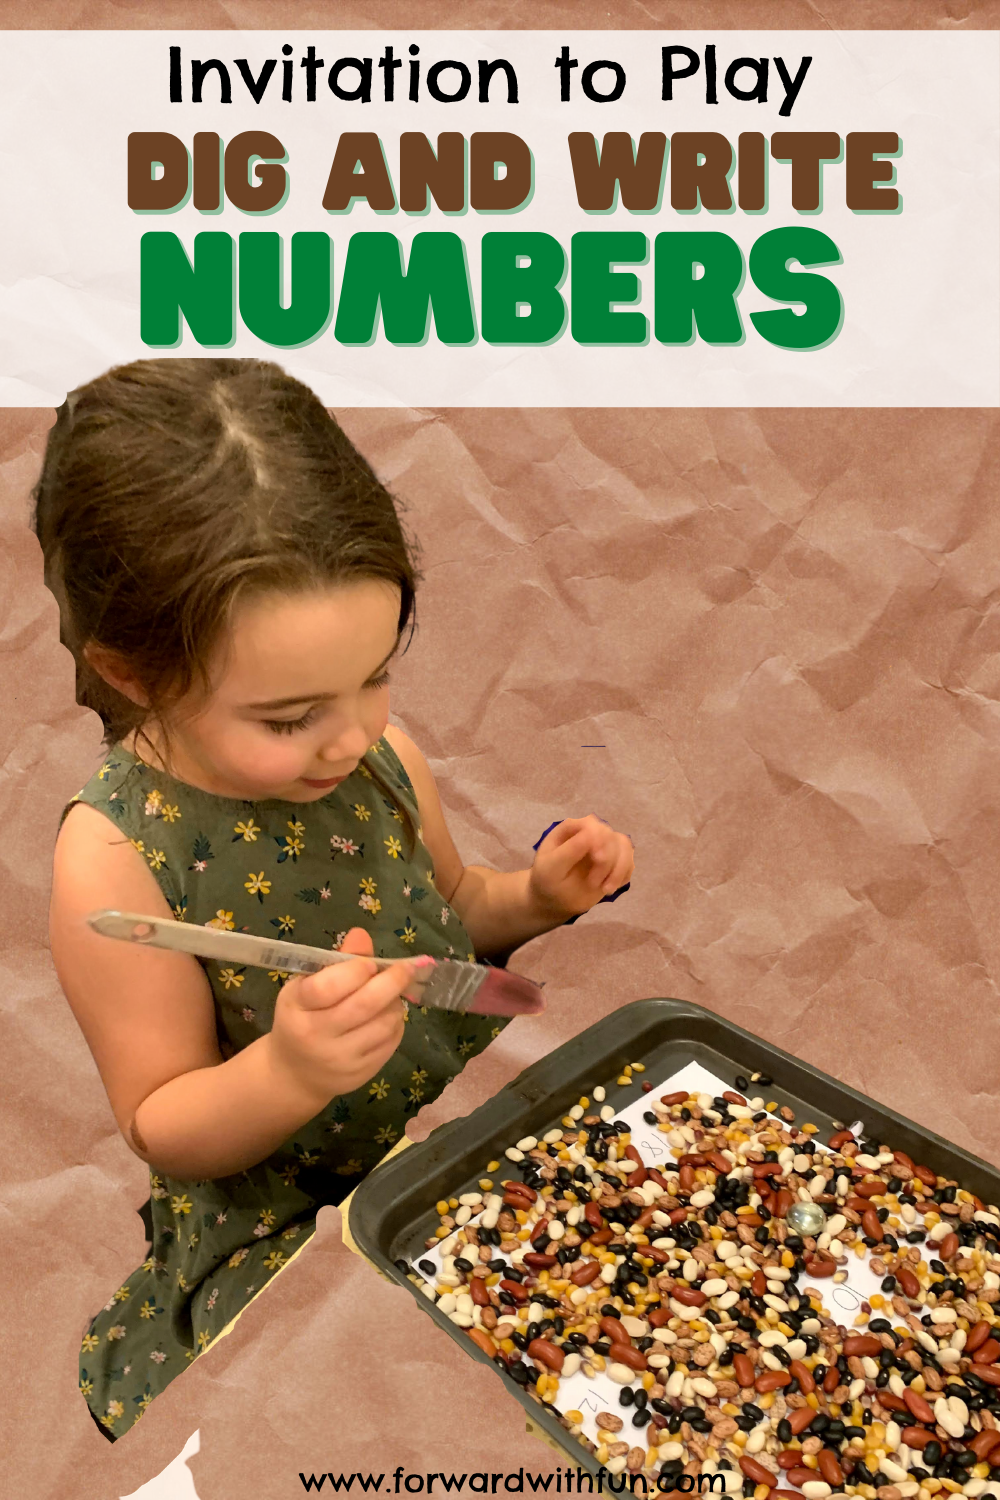 Child digging for numbers through beans